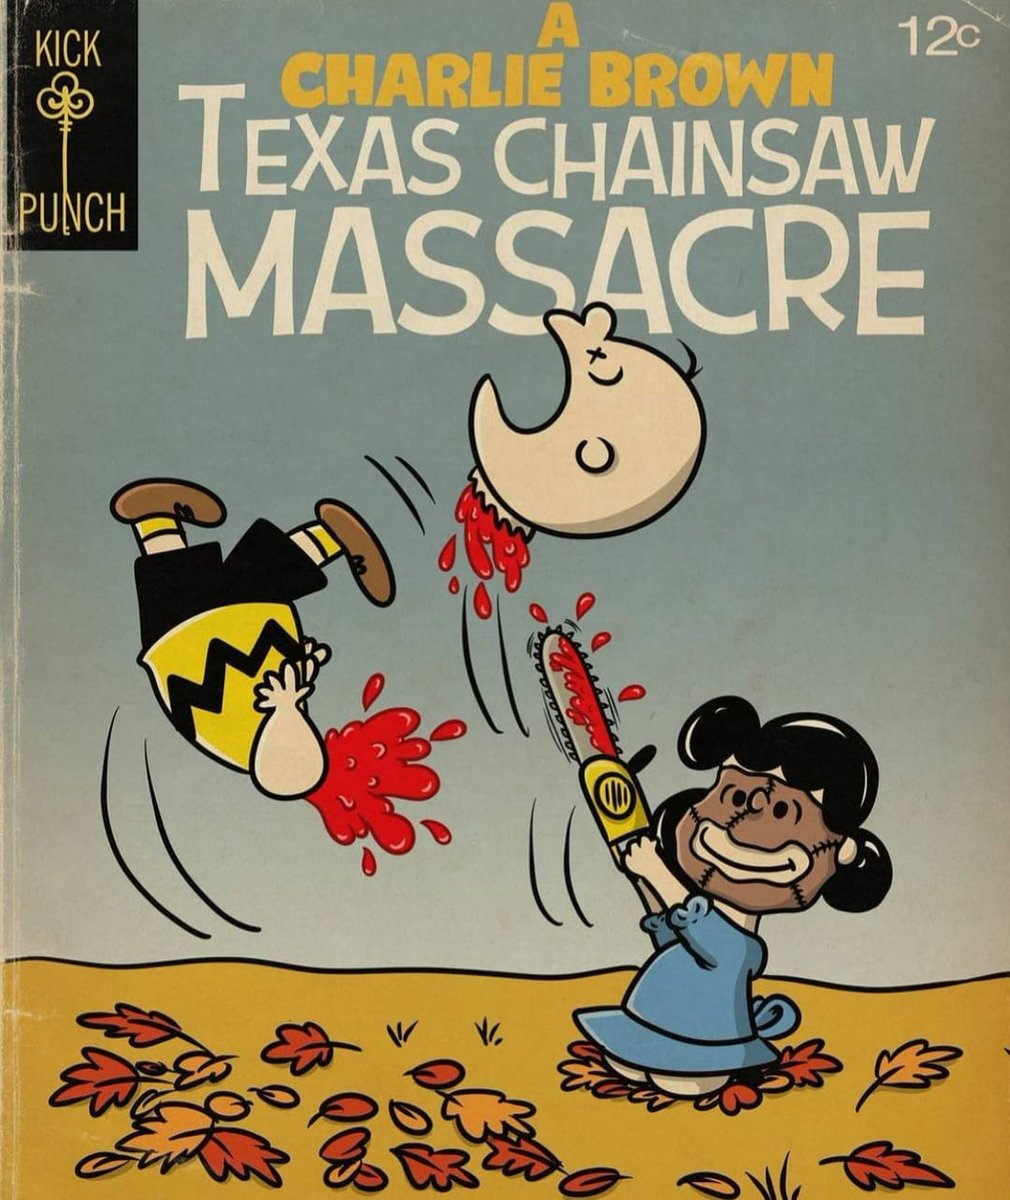 Lucy always had it in for Charlie Brown. That poor blockhead never had a chance :(